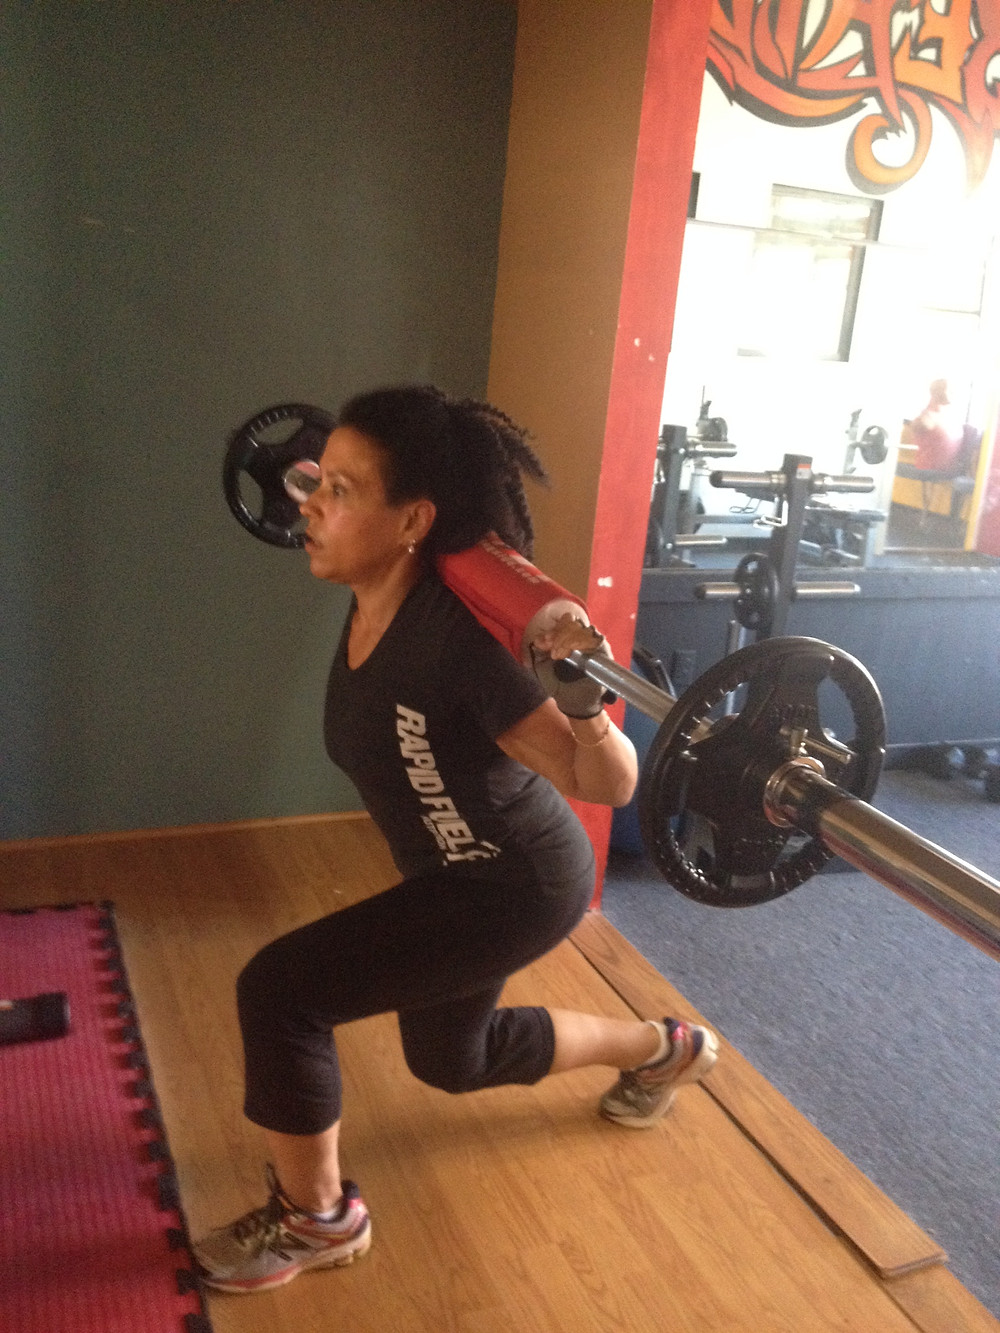 Personal training in Chico